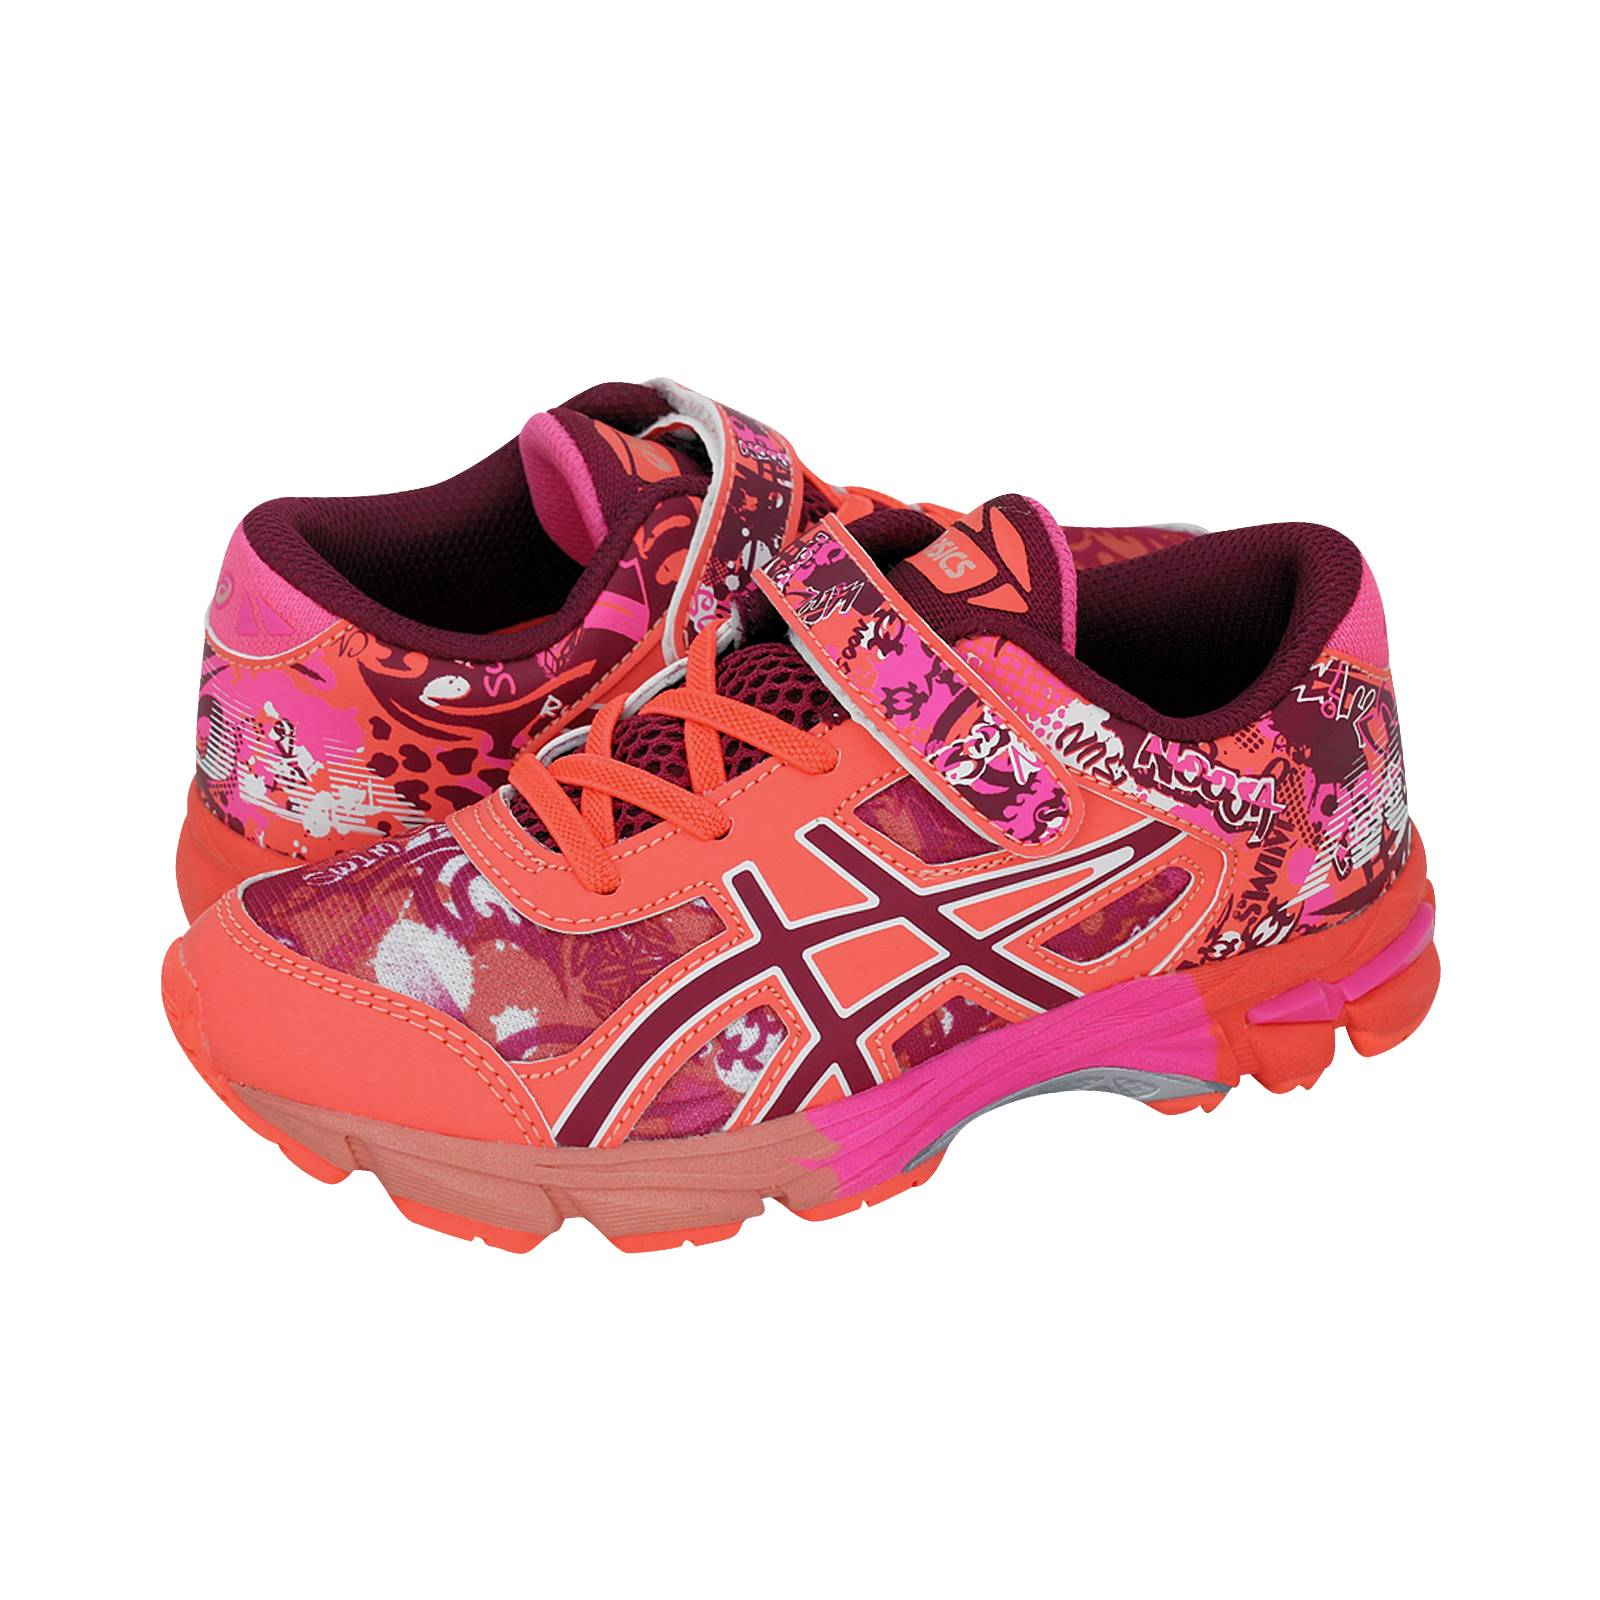 Gel-Noosa TRI 11 PS - Παιδικά αθλητικά παπούτσια Asics από υφασμα ... ea0f6aa59ee